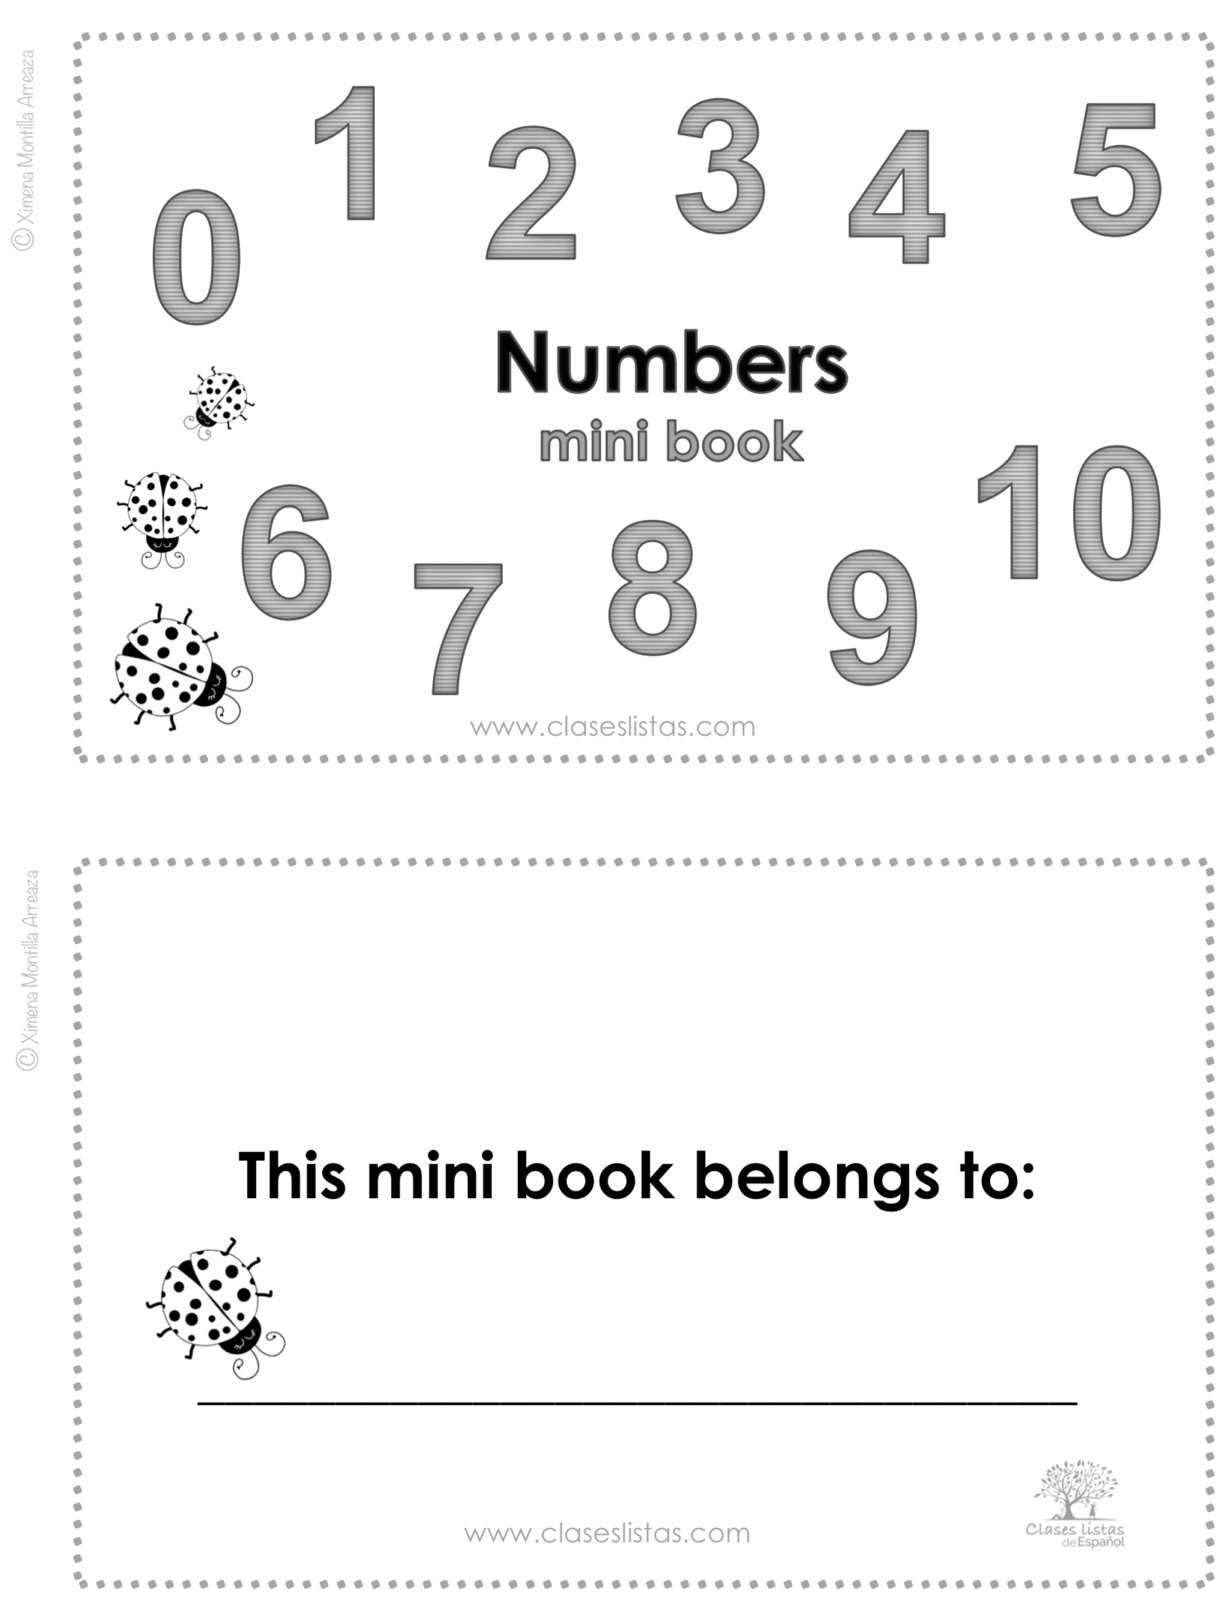 Numbers Minibook  (English version)